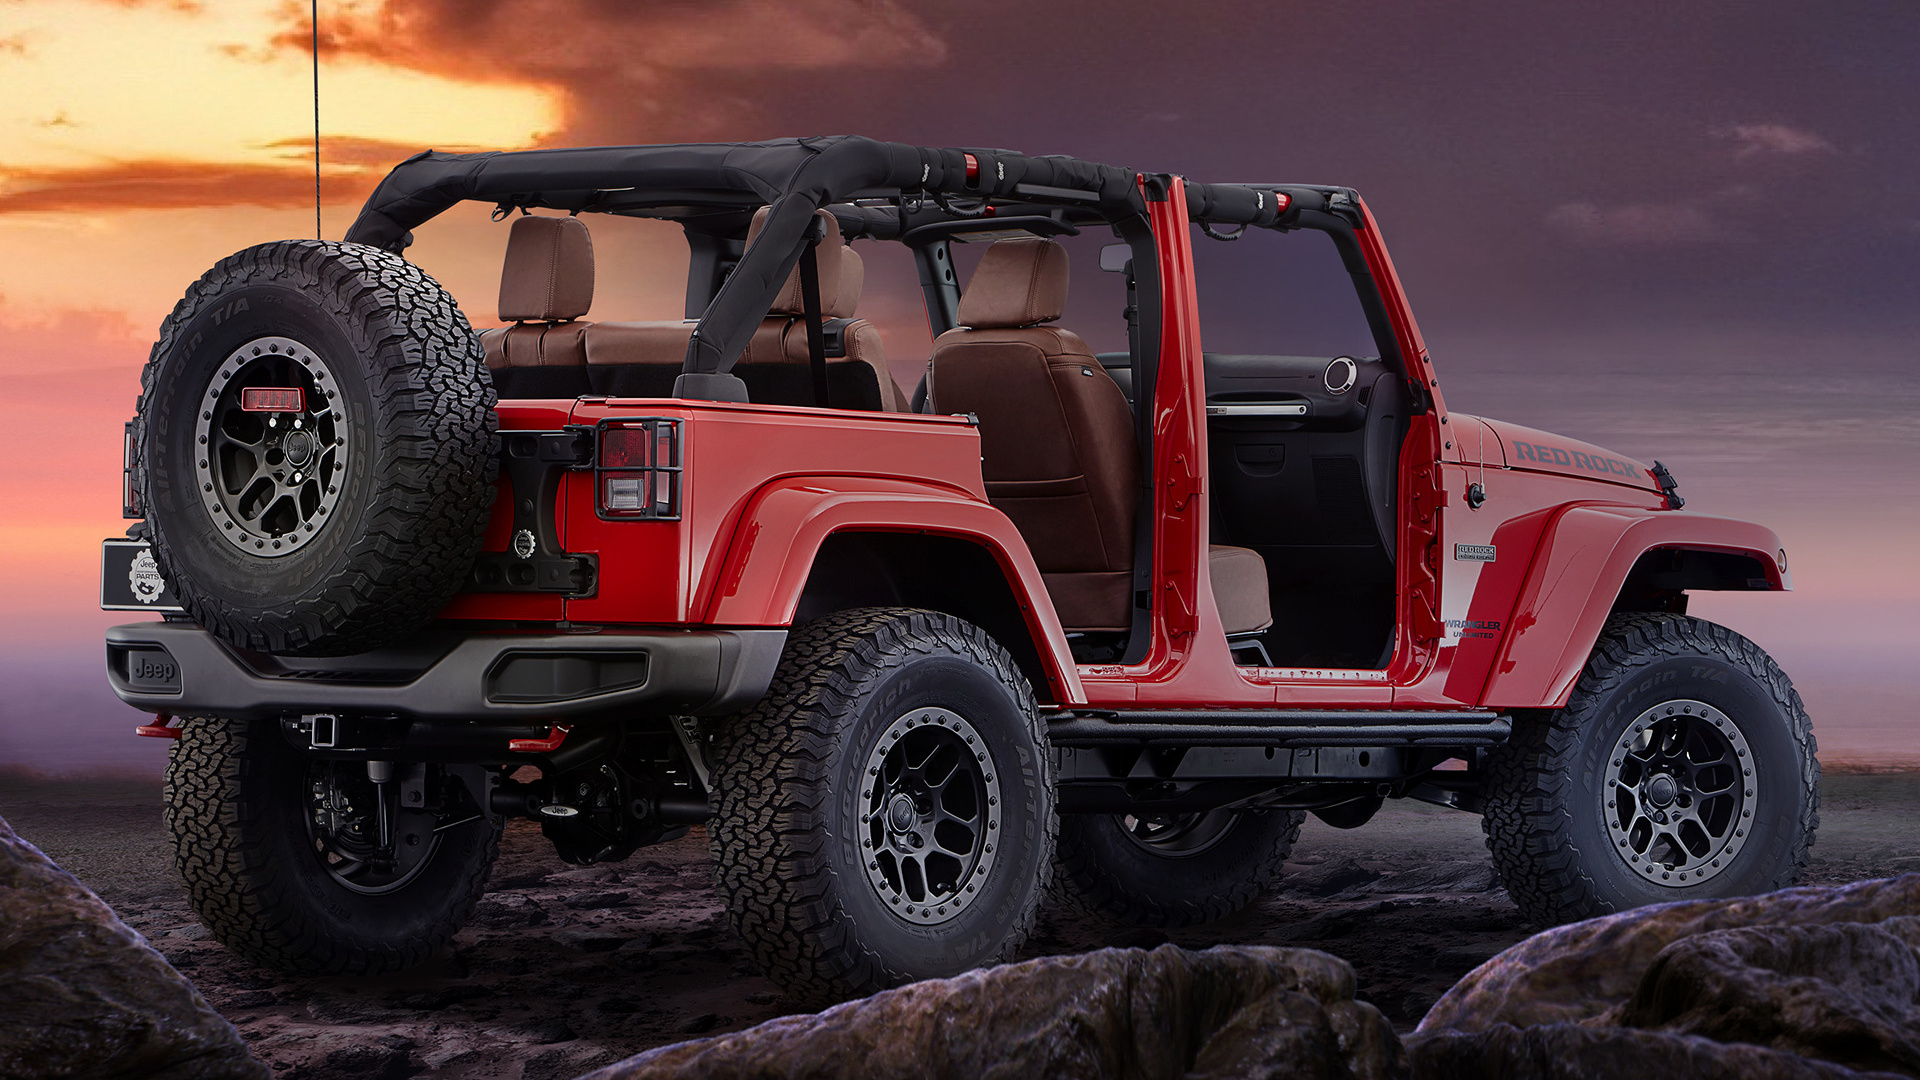 Jeep Wrangler Red Rock Concept (2015) Wallpapers and HD ...